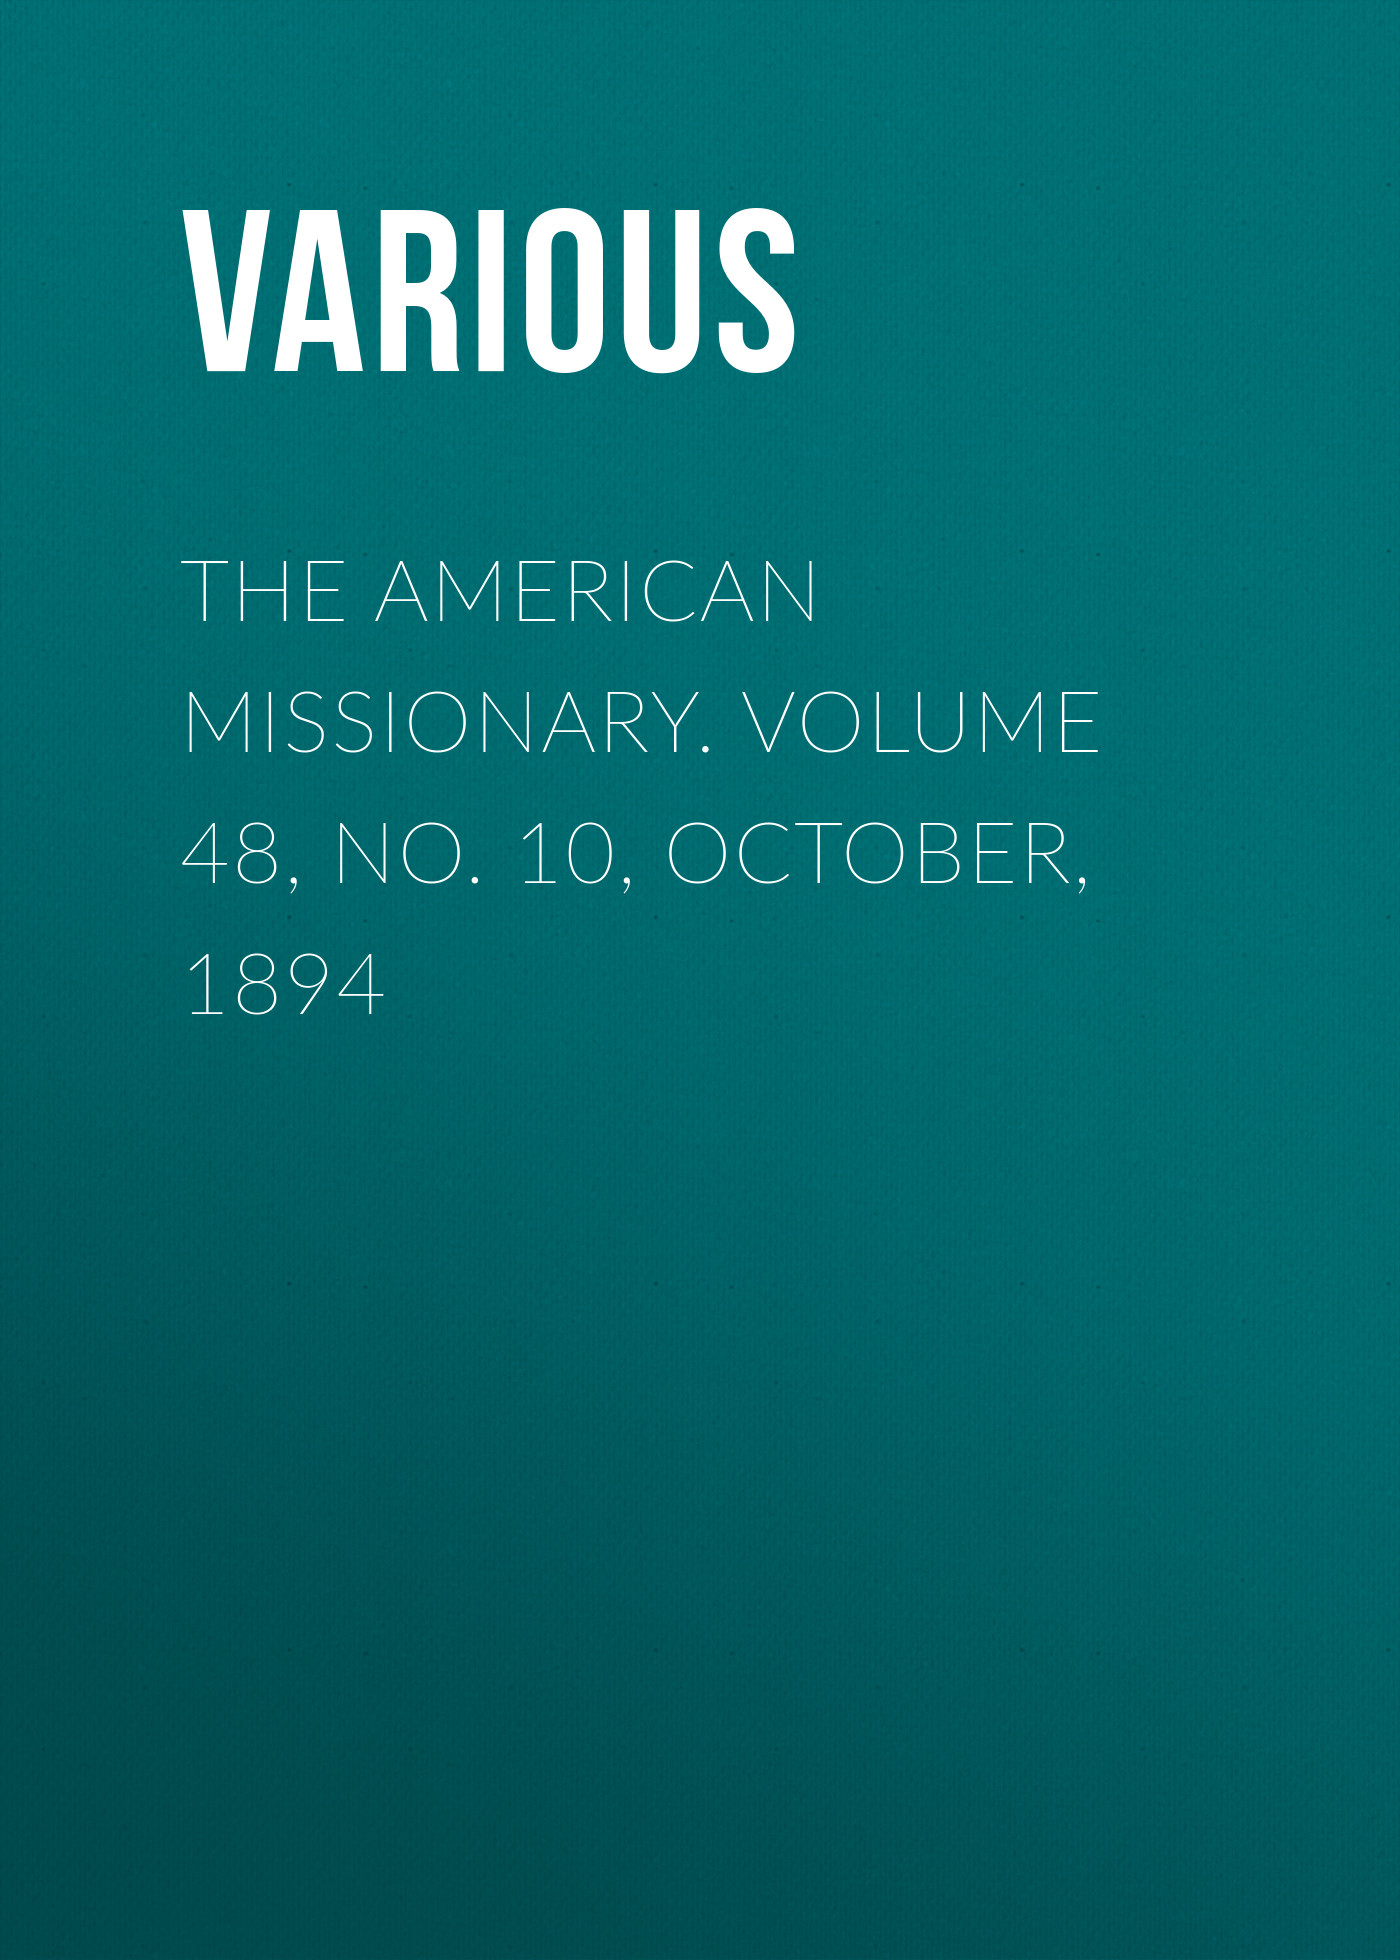 Various The American Missionary. Volume 48, No. 10, October, 1894 october